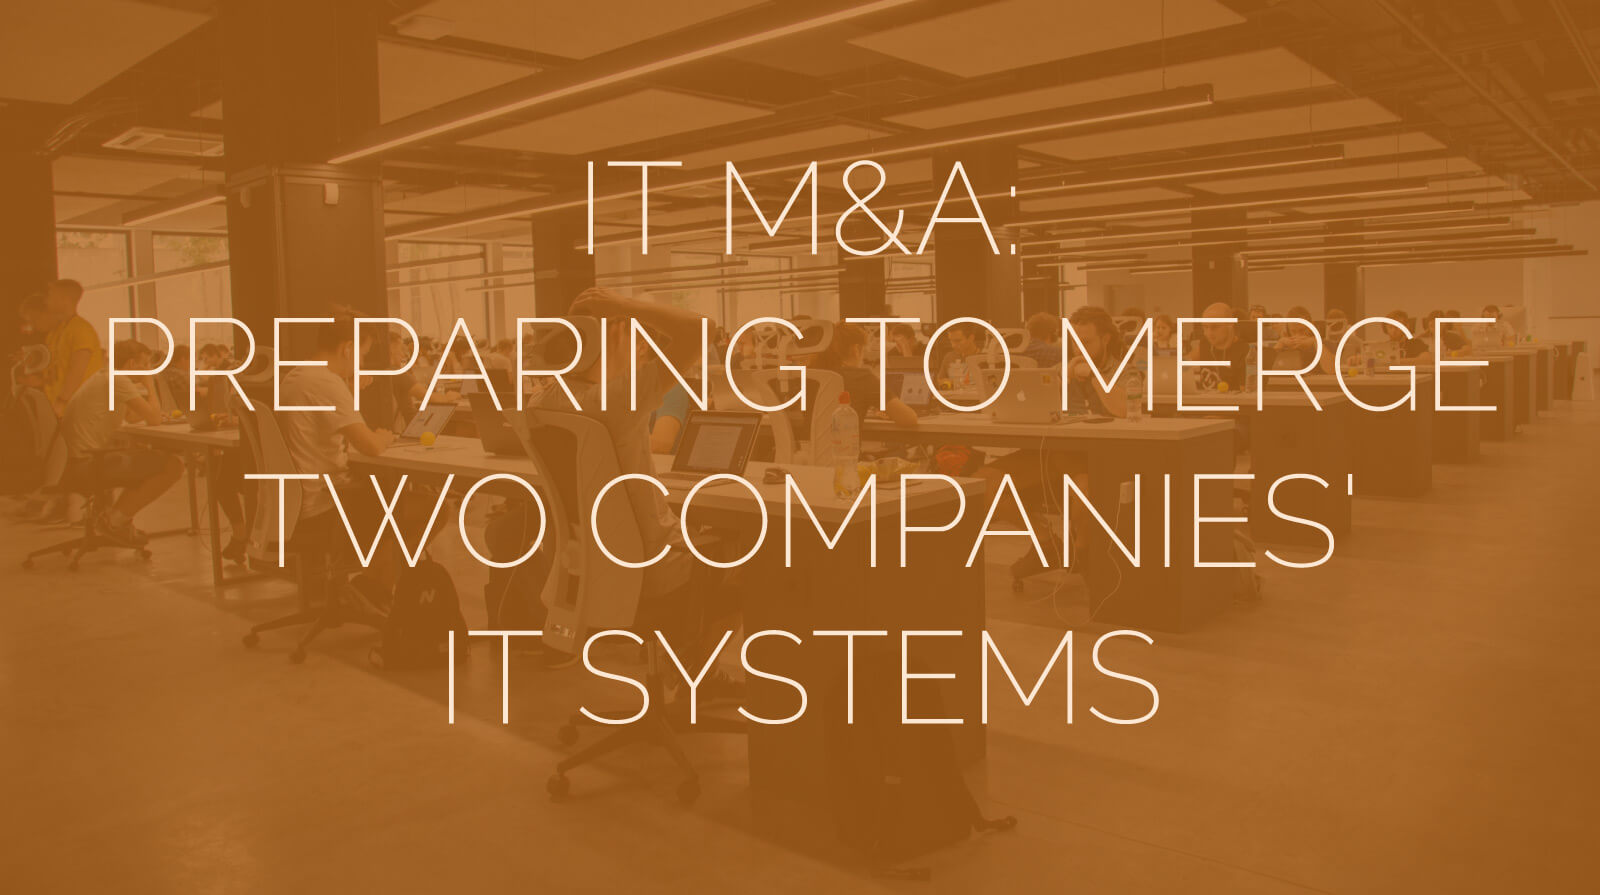 IT M&A - Preparing to Merge Two Companies IT Systems